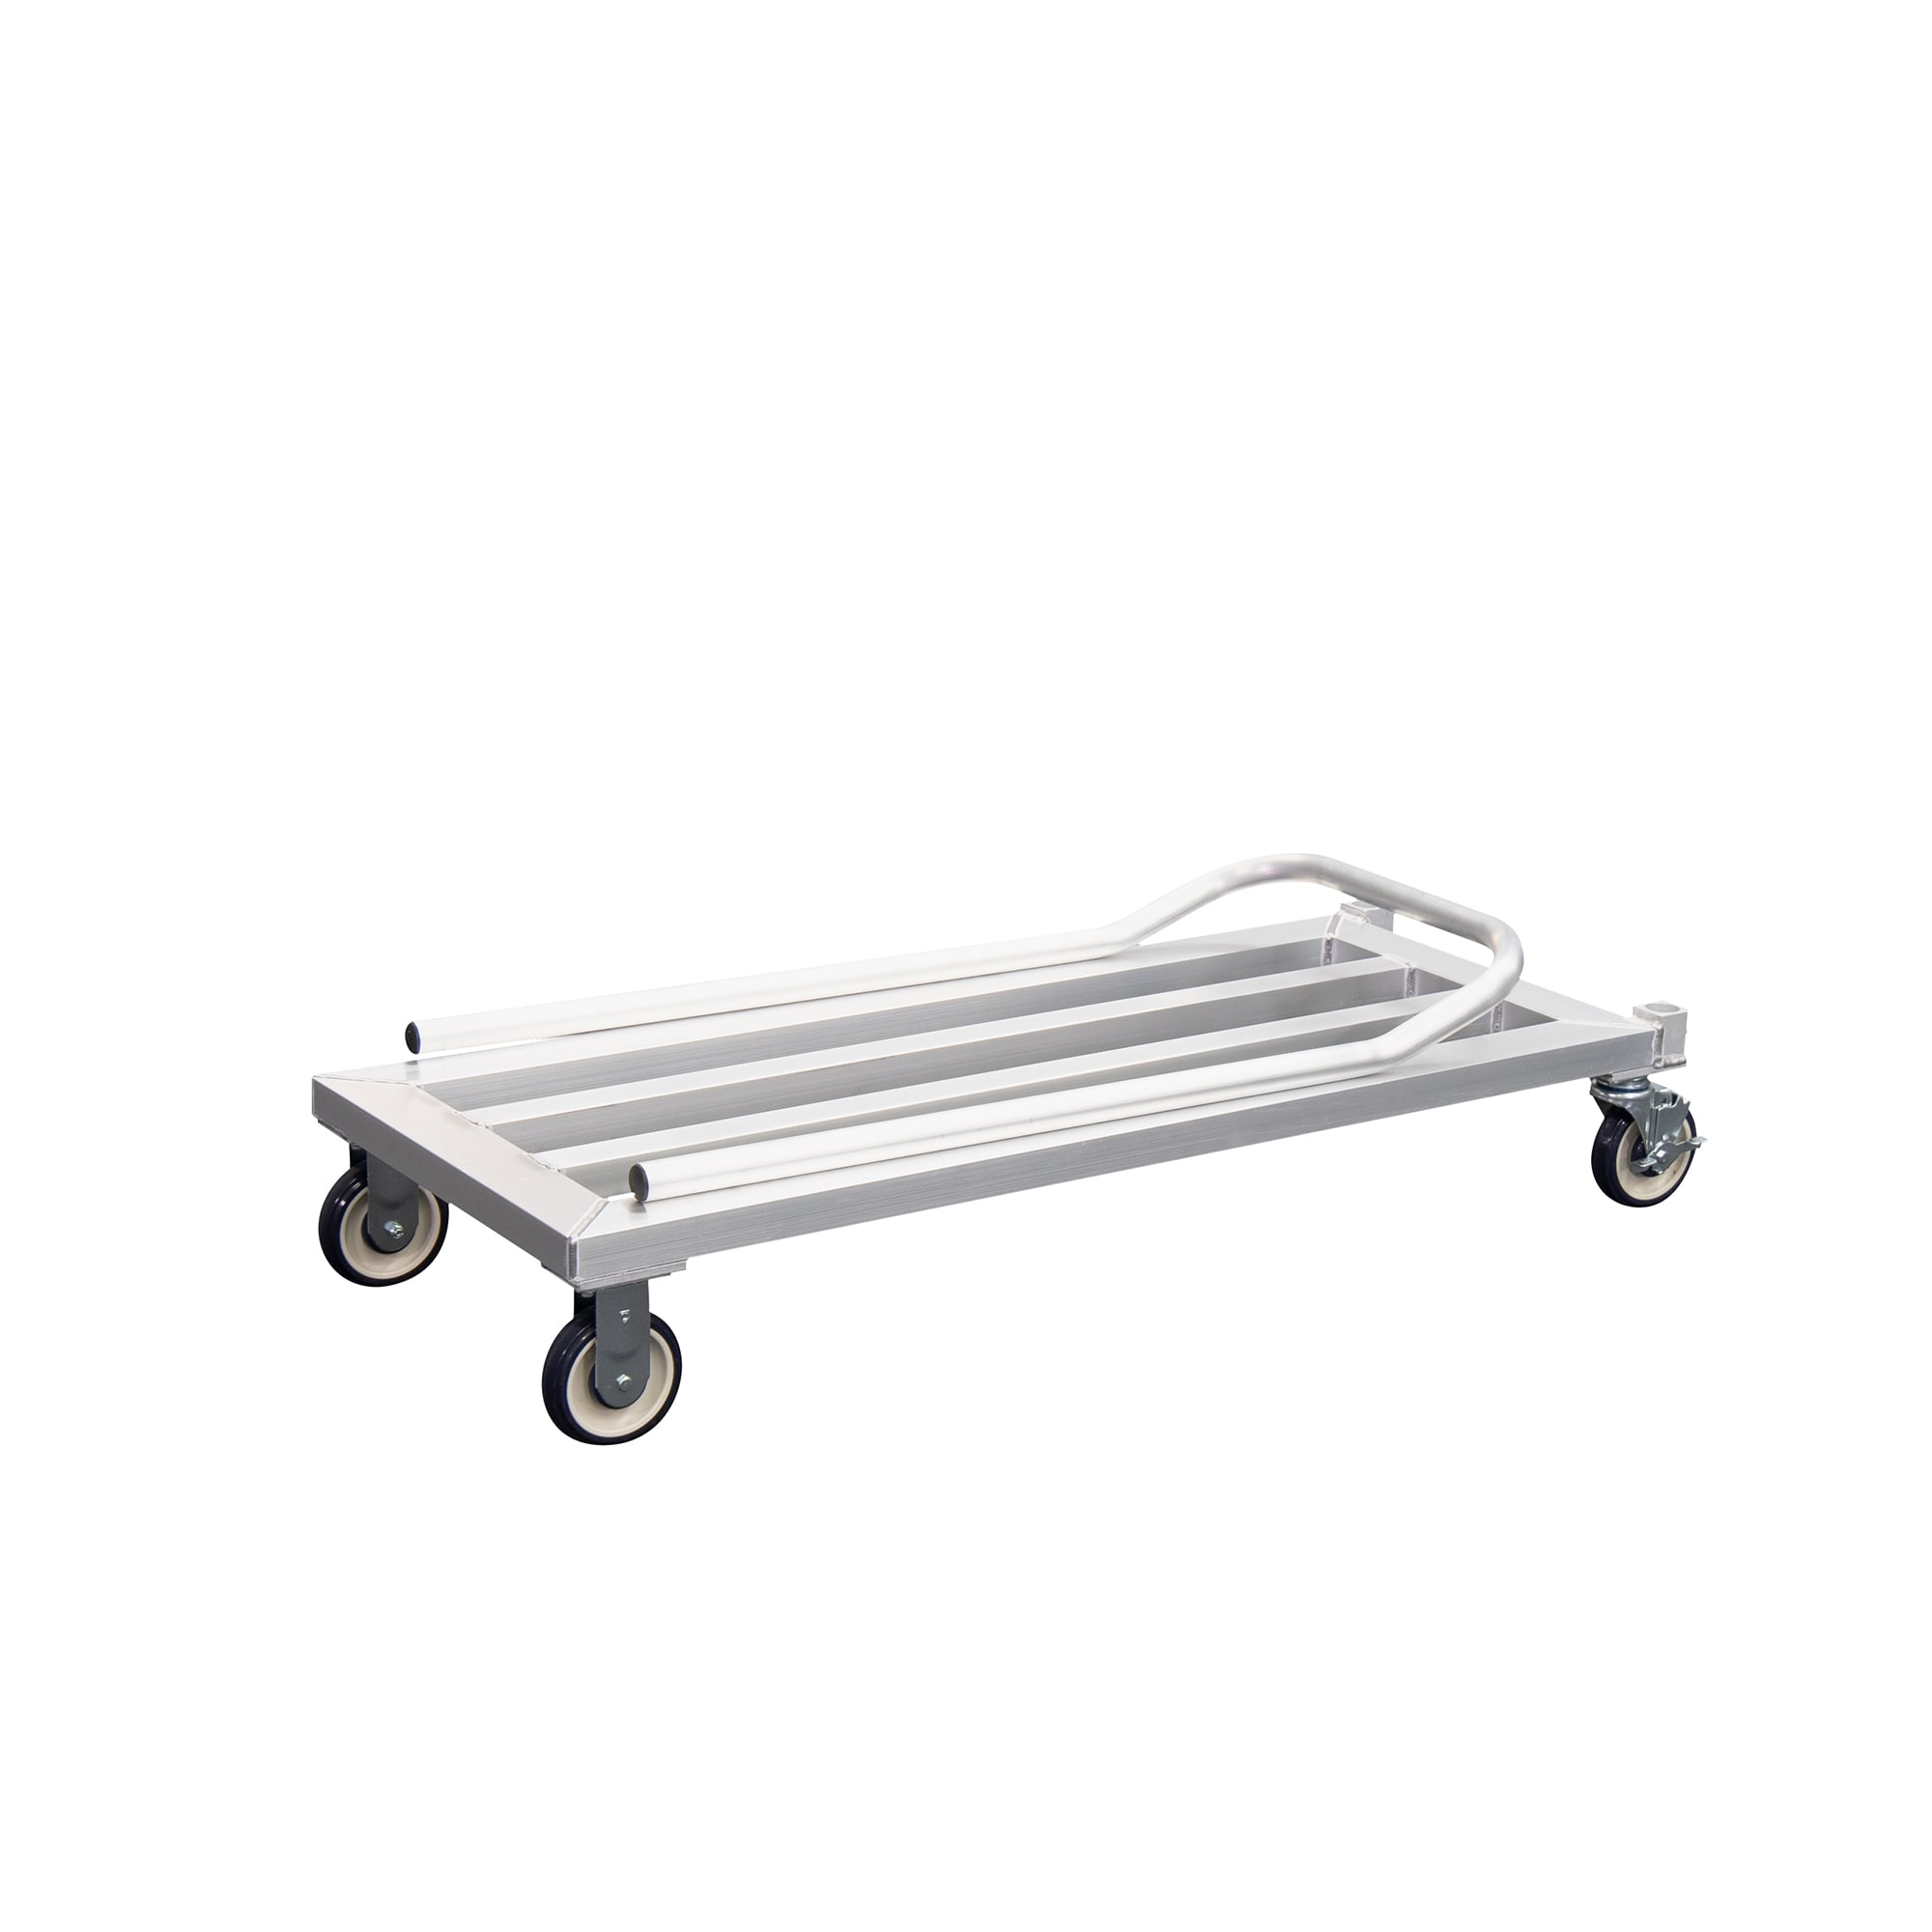 "New Age 1203 49.75"" Mobile Dunnage Rack w/ 1000 lb Capacity, Aluminum"